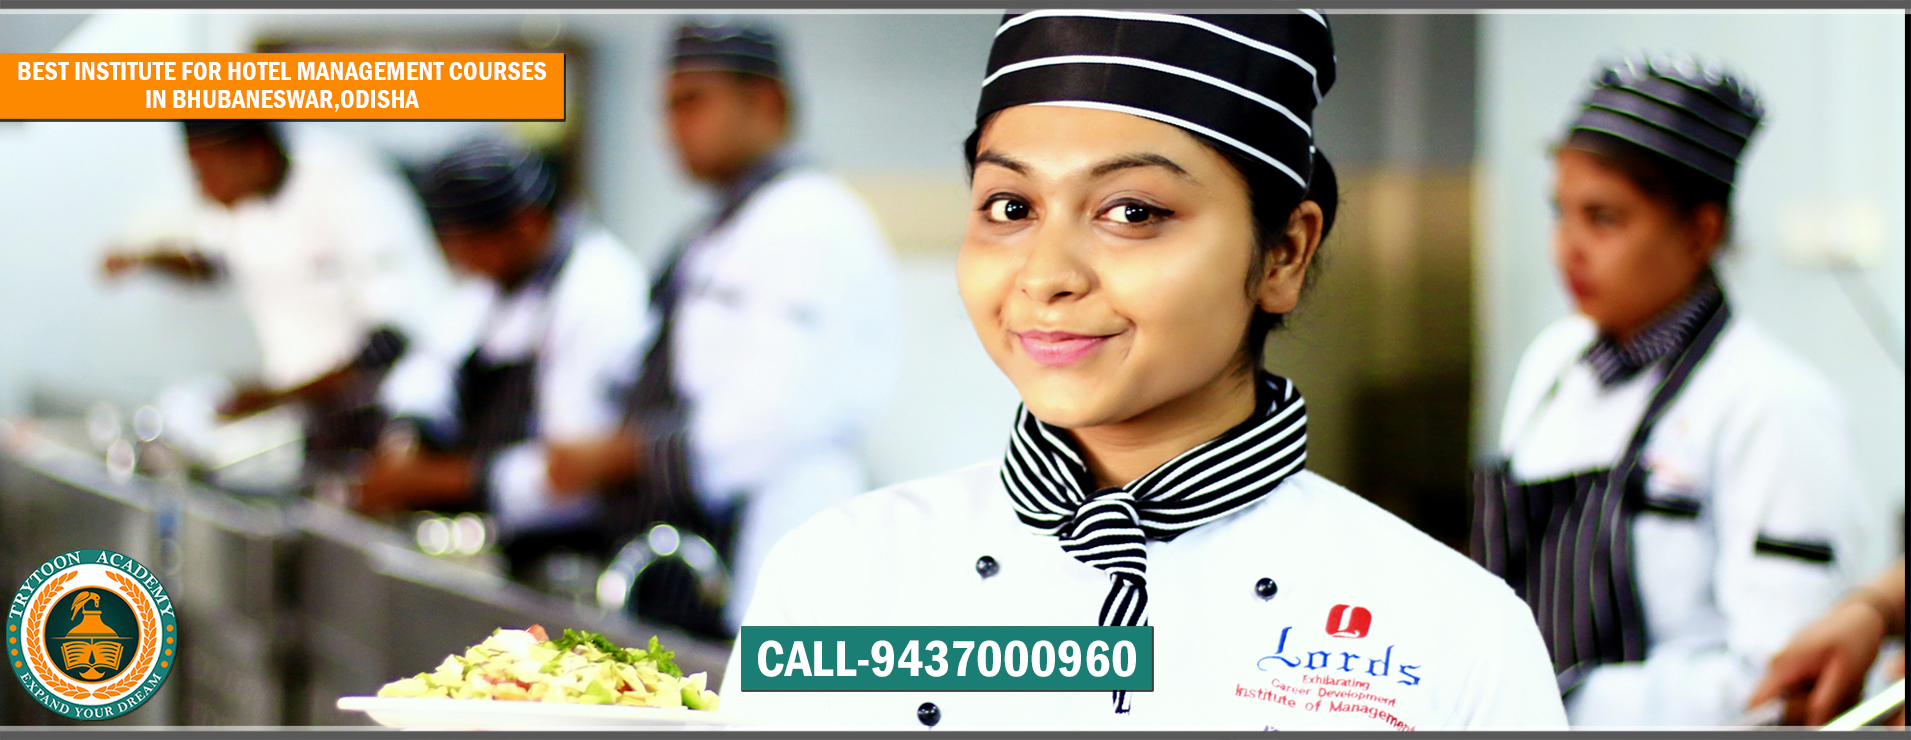 Hotel management colleges in bhubaneswar odisha